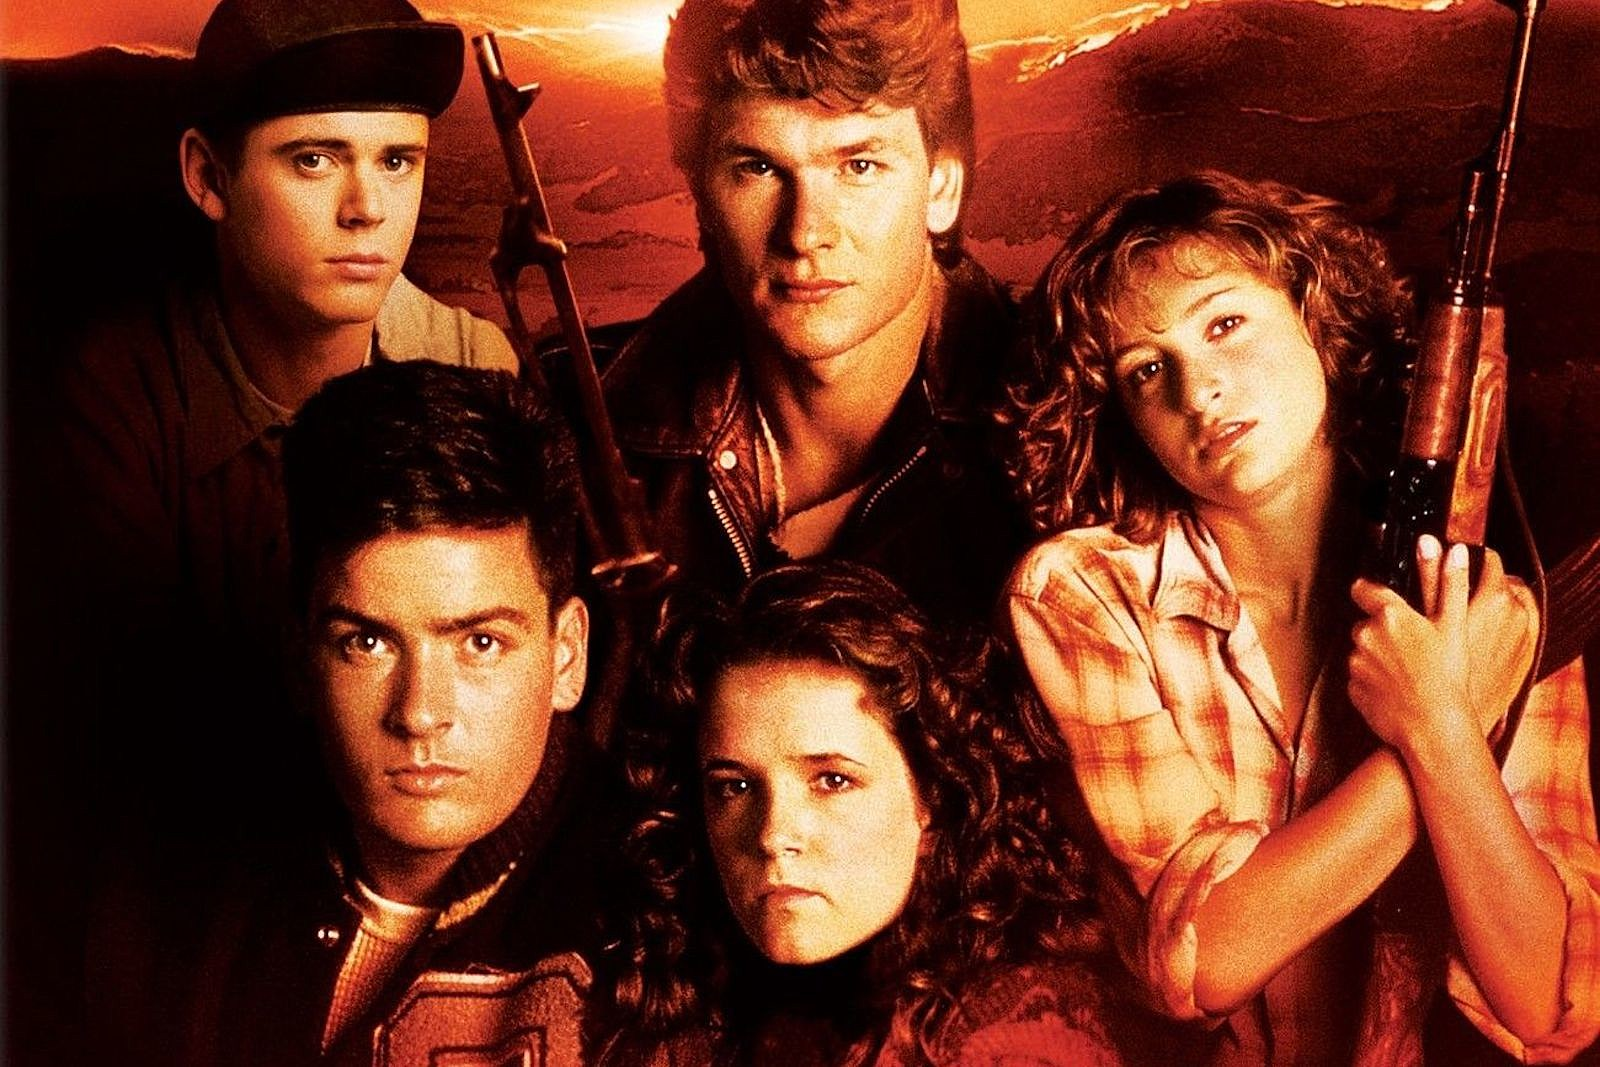 35 Years Ago: 'Red Dawn' Celebrates Rugged Individualism, and Blowing Up Stuff